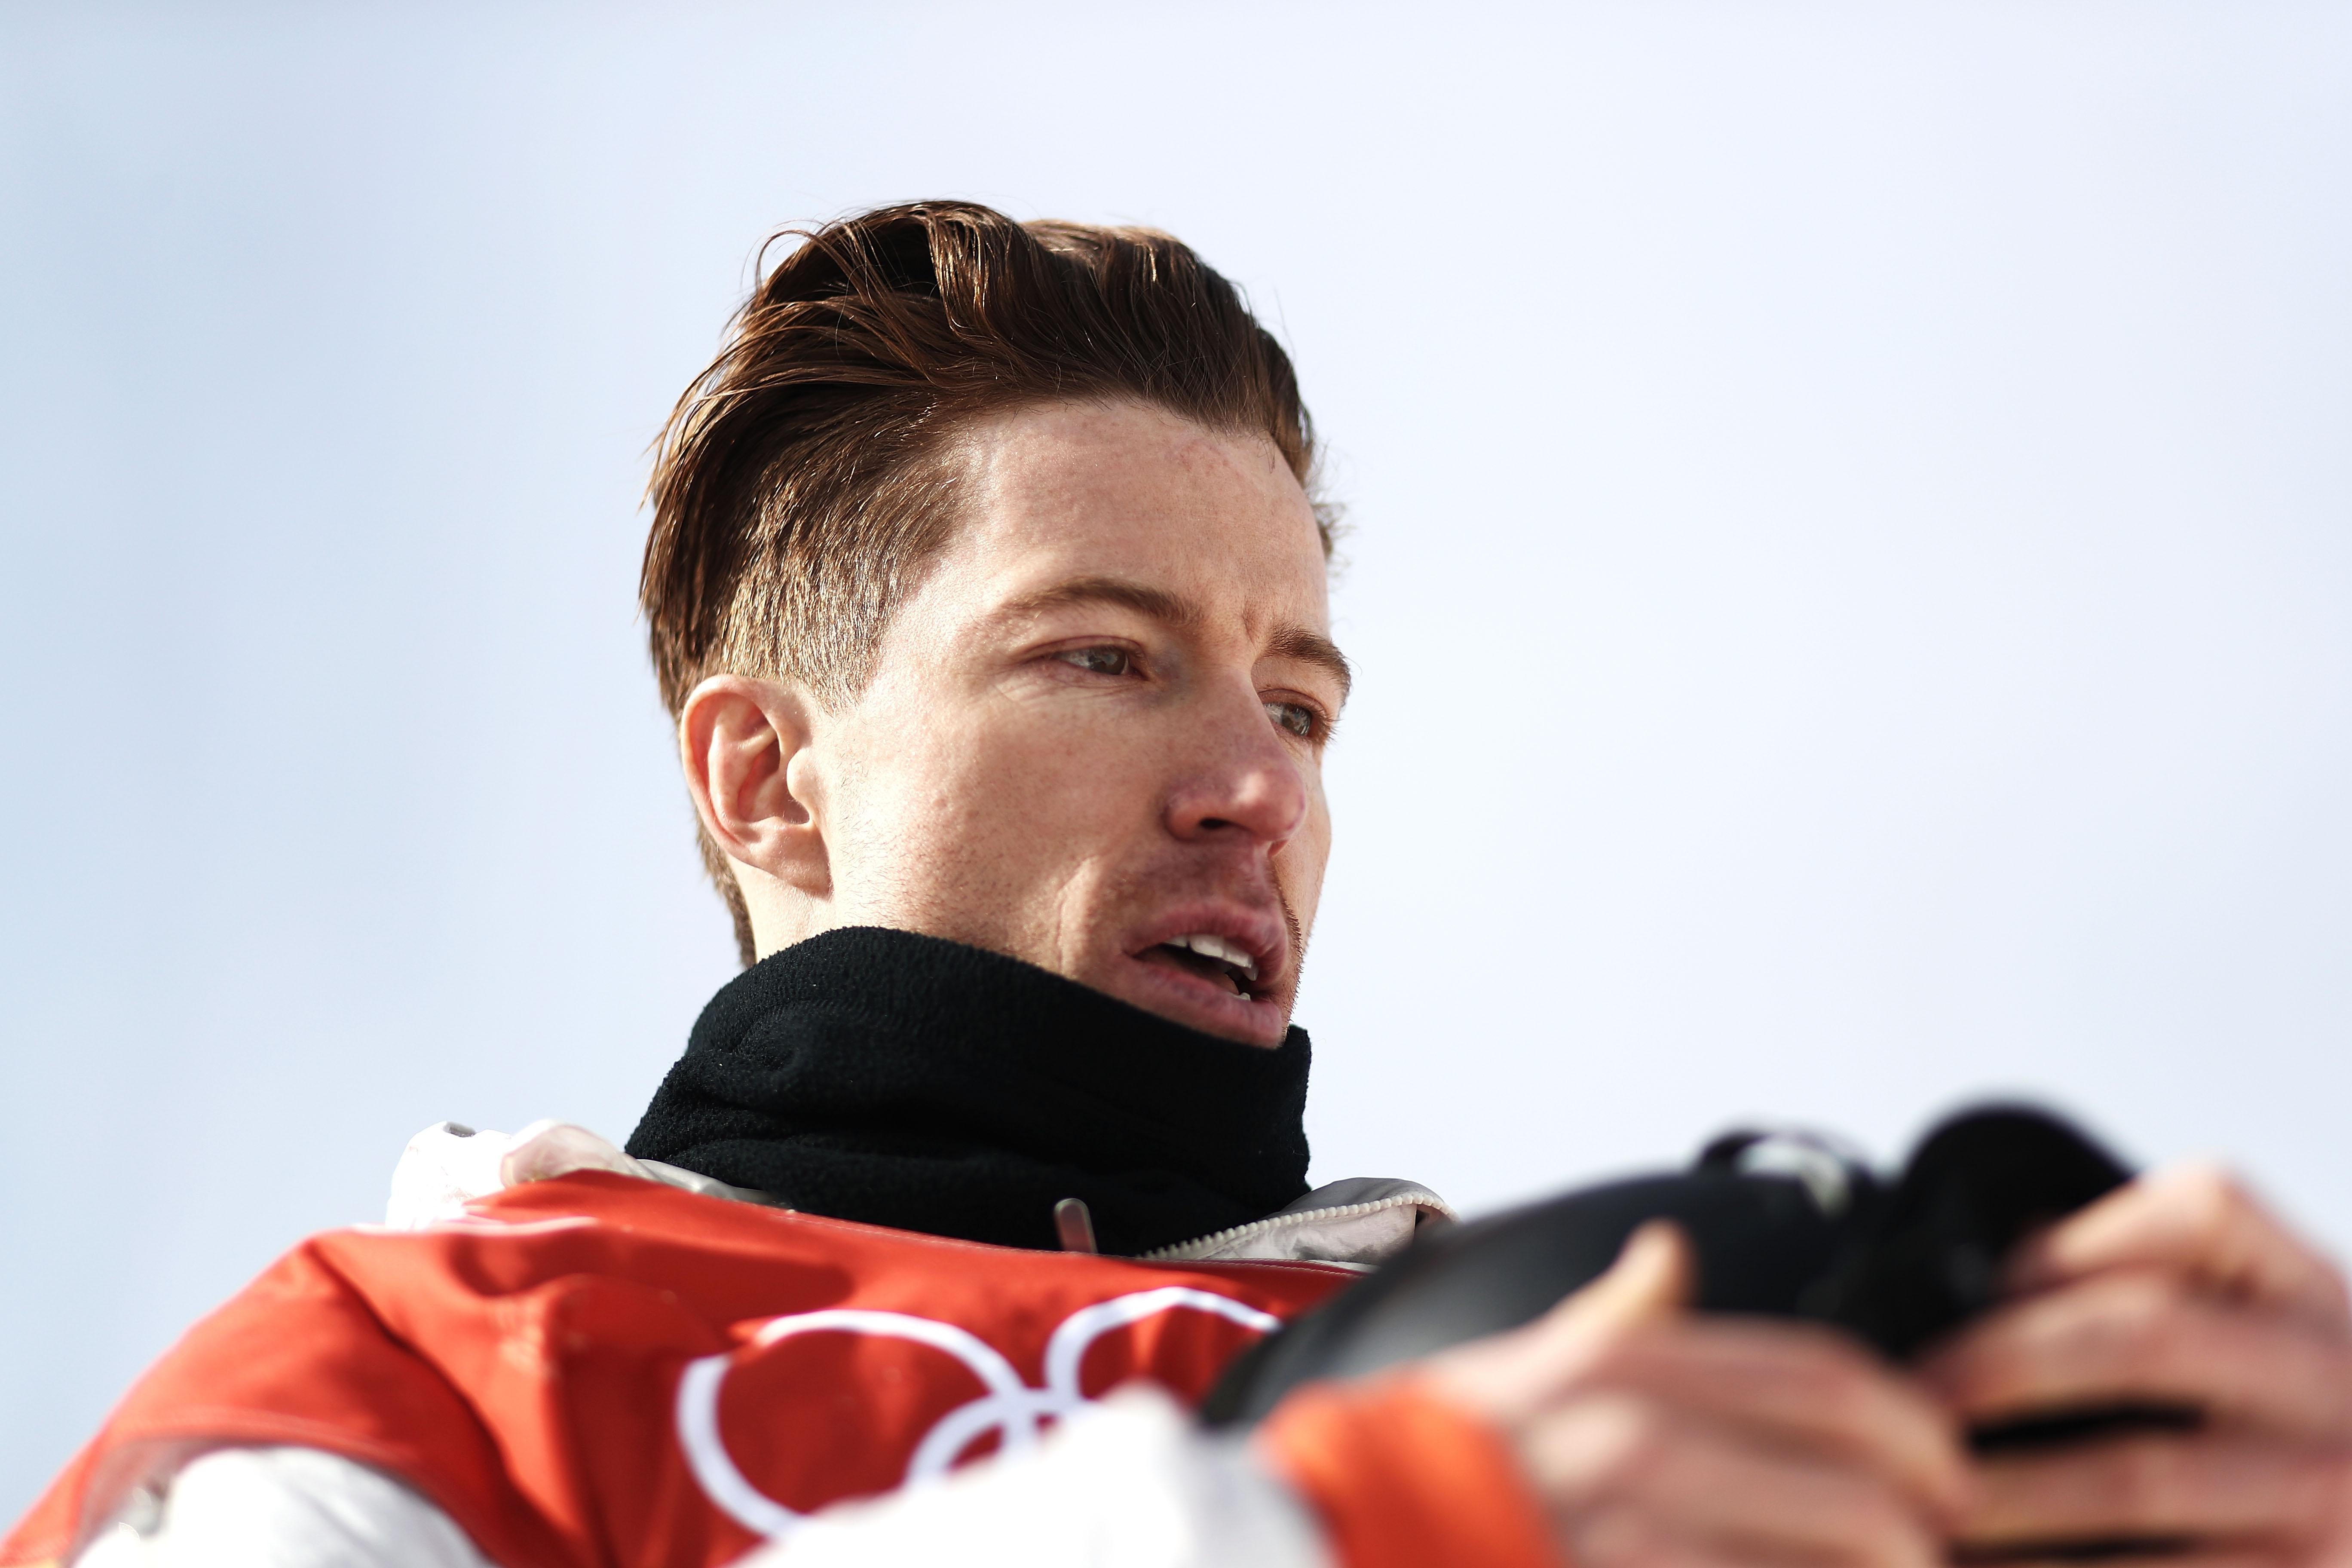 PYEONGCHANG-GUN, SOUTH KOREA - FEBRUARY 13:  Shaun White of the United States reacts after his run during the Snowboard Men's Halfpipe Qualification on day four of the PyeongChang 2018 Winter Olympic Games at Phoenix Snow Park on February 13, 2018 in Pyeongchang-gun, South Korea.  (Photo by Ryan Pierse/Getty Images)